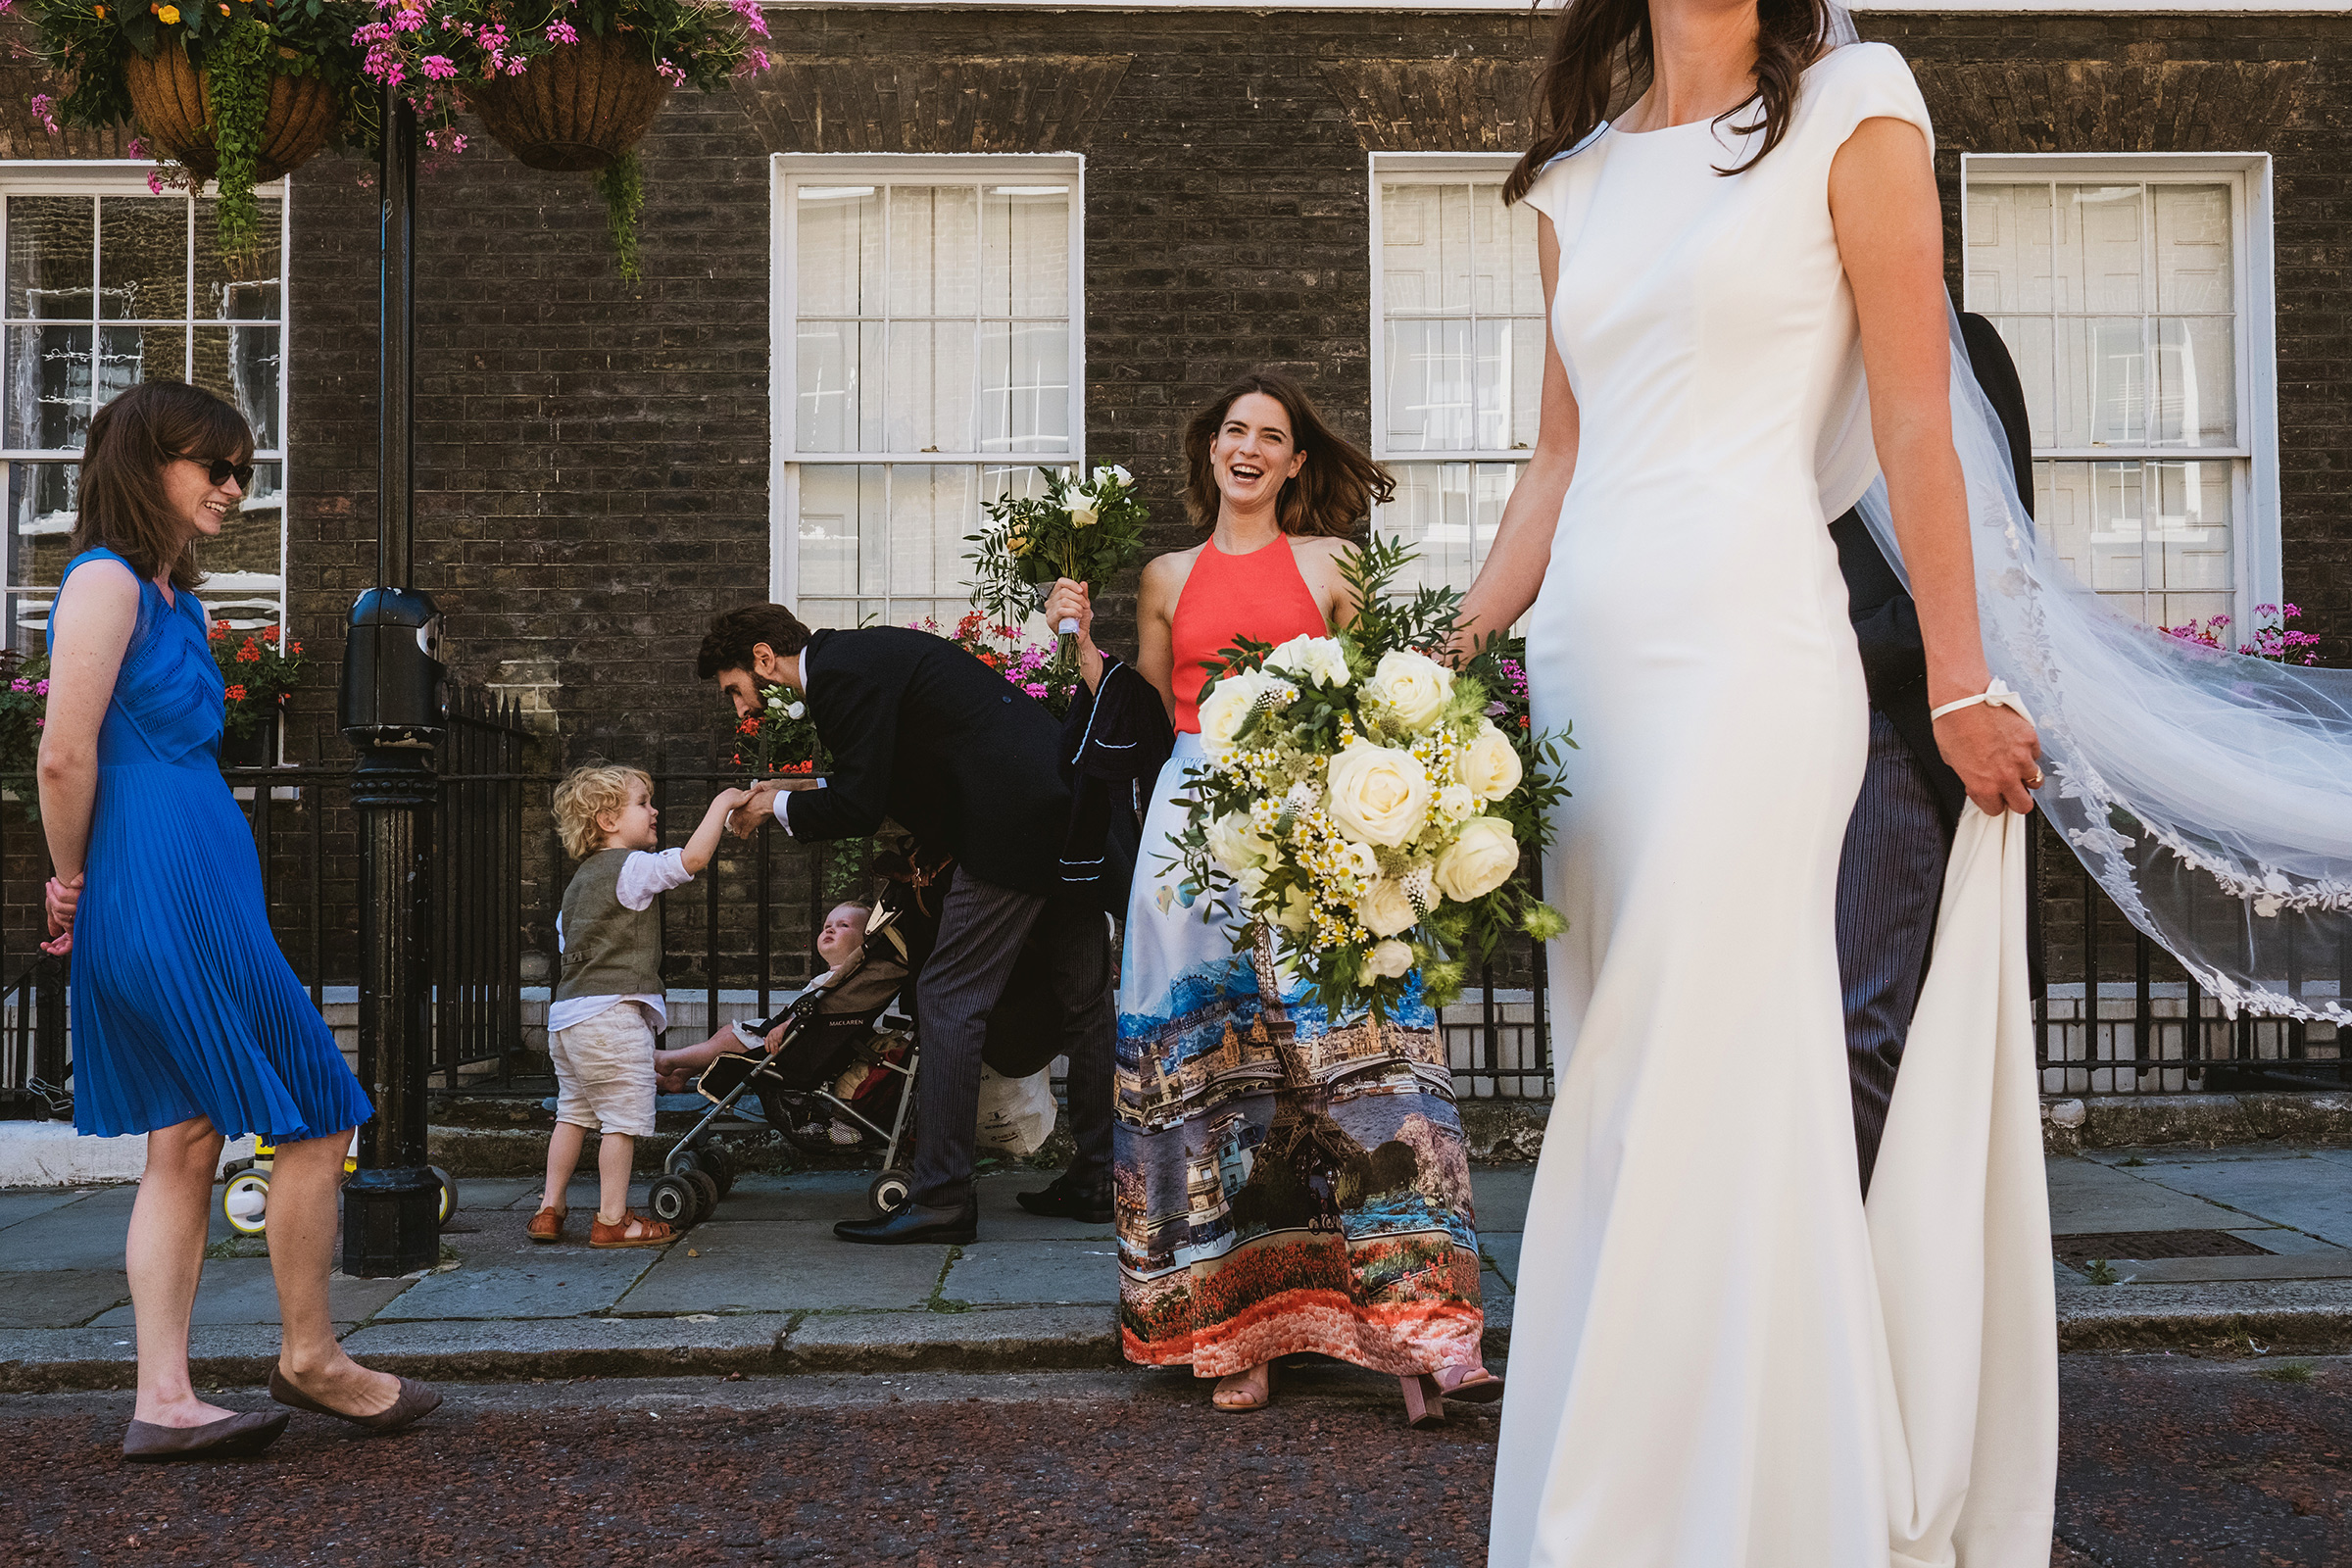 Chic bride portrait on street with others - photo by York Place Studios